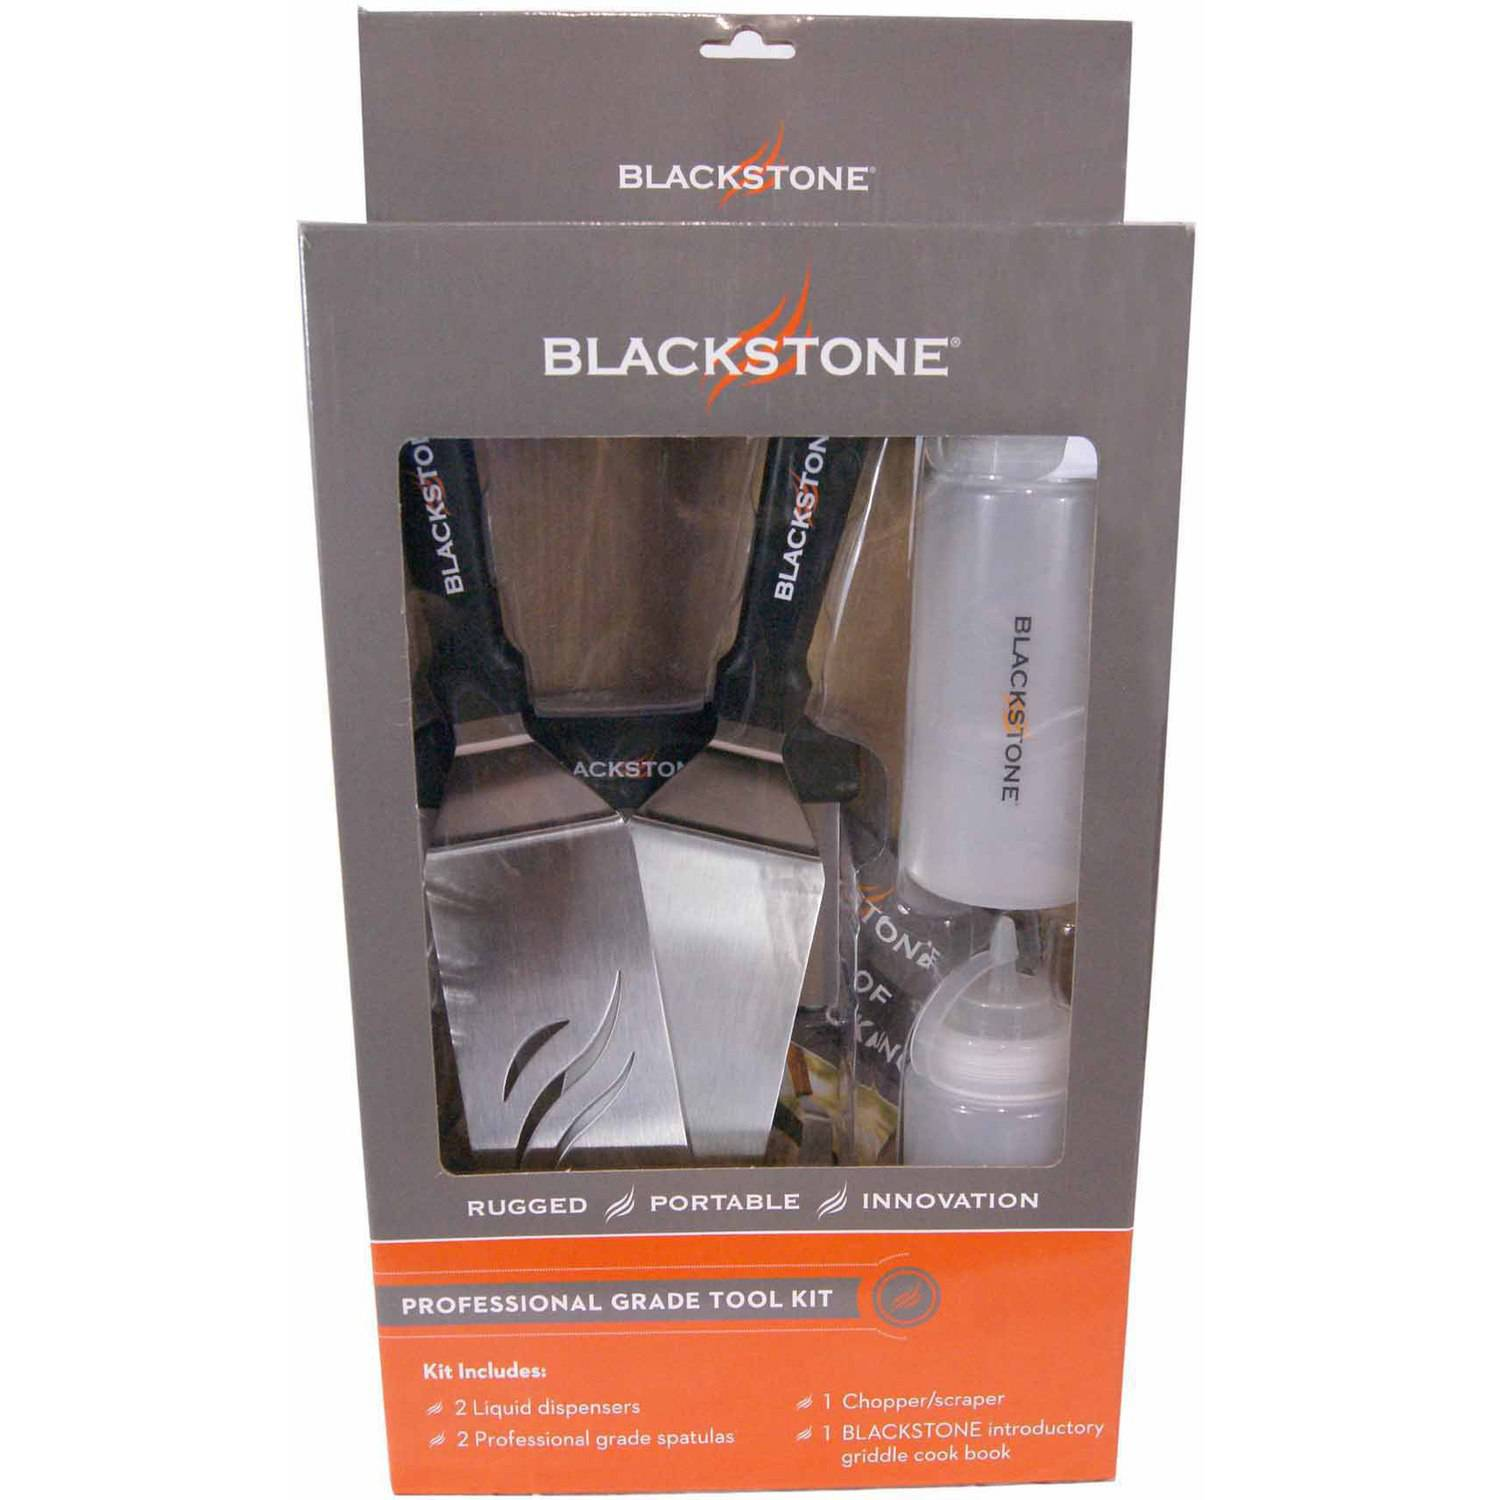 Blackstone 1542 Accessory Tool Kit, 6 Count